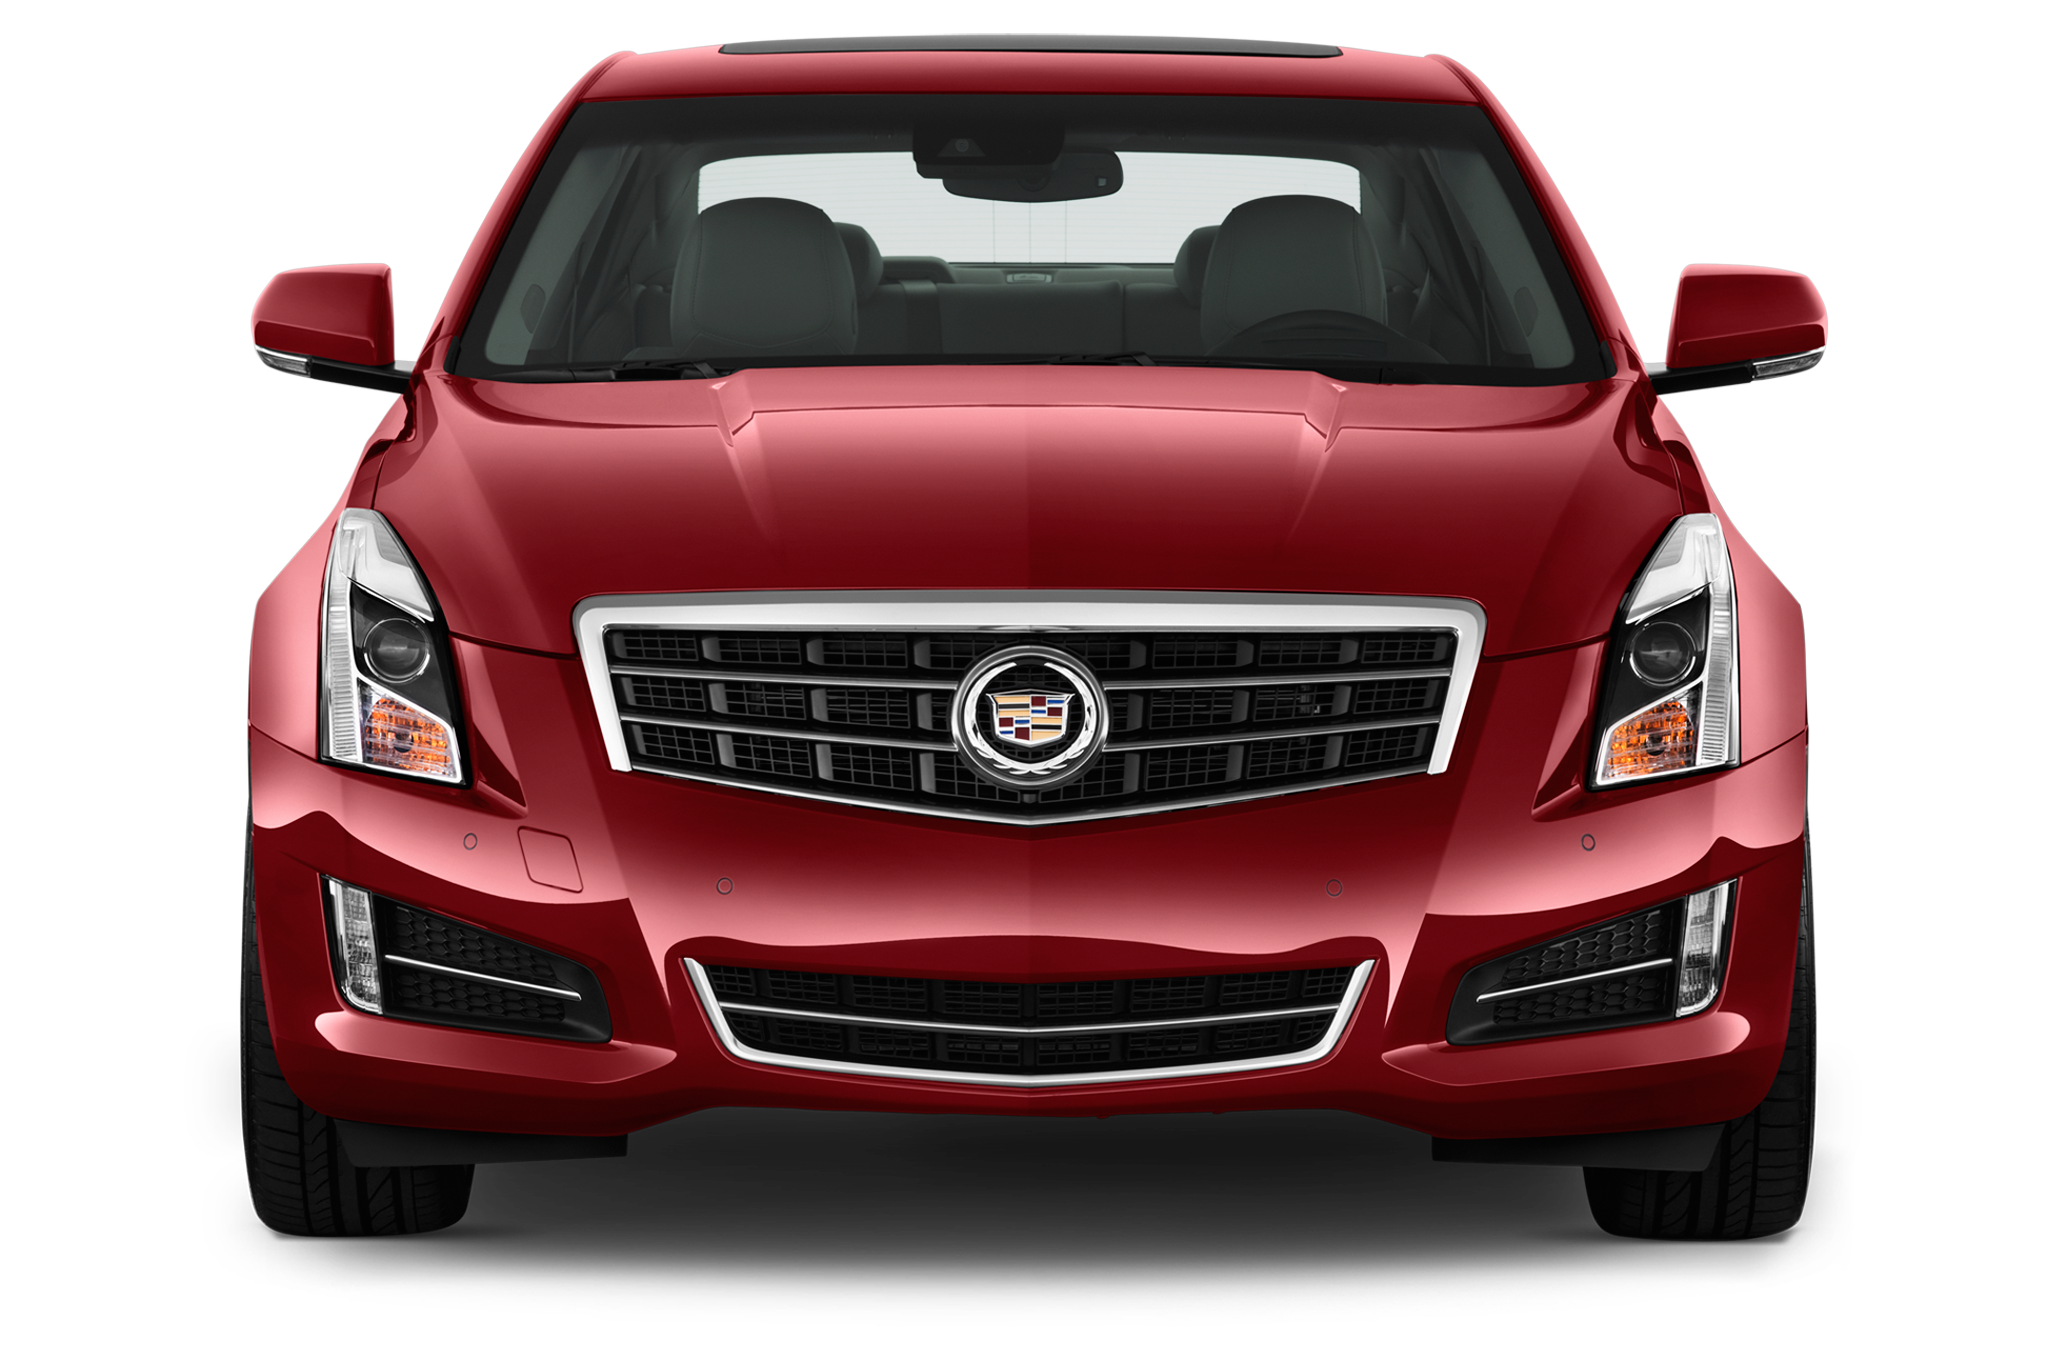 Cadillac ATS 2013 - International Price & Overview